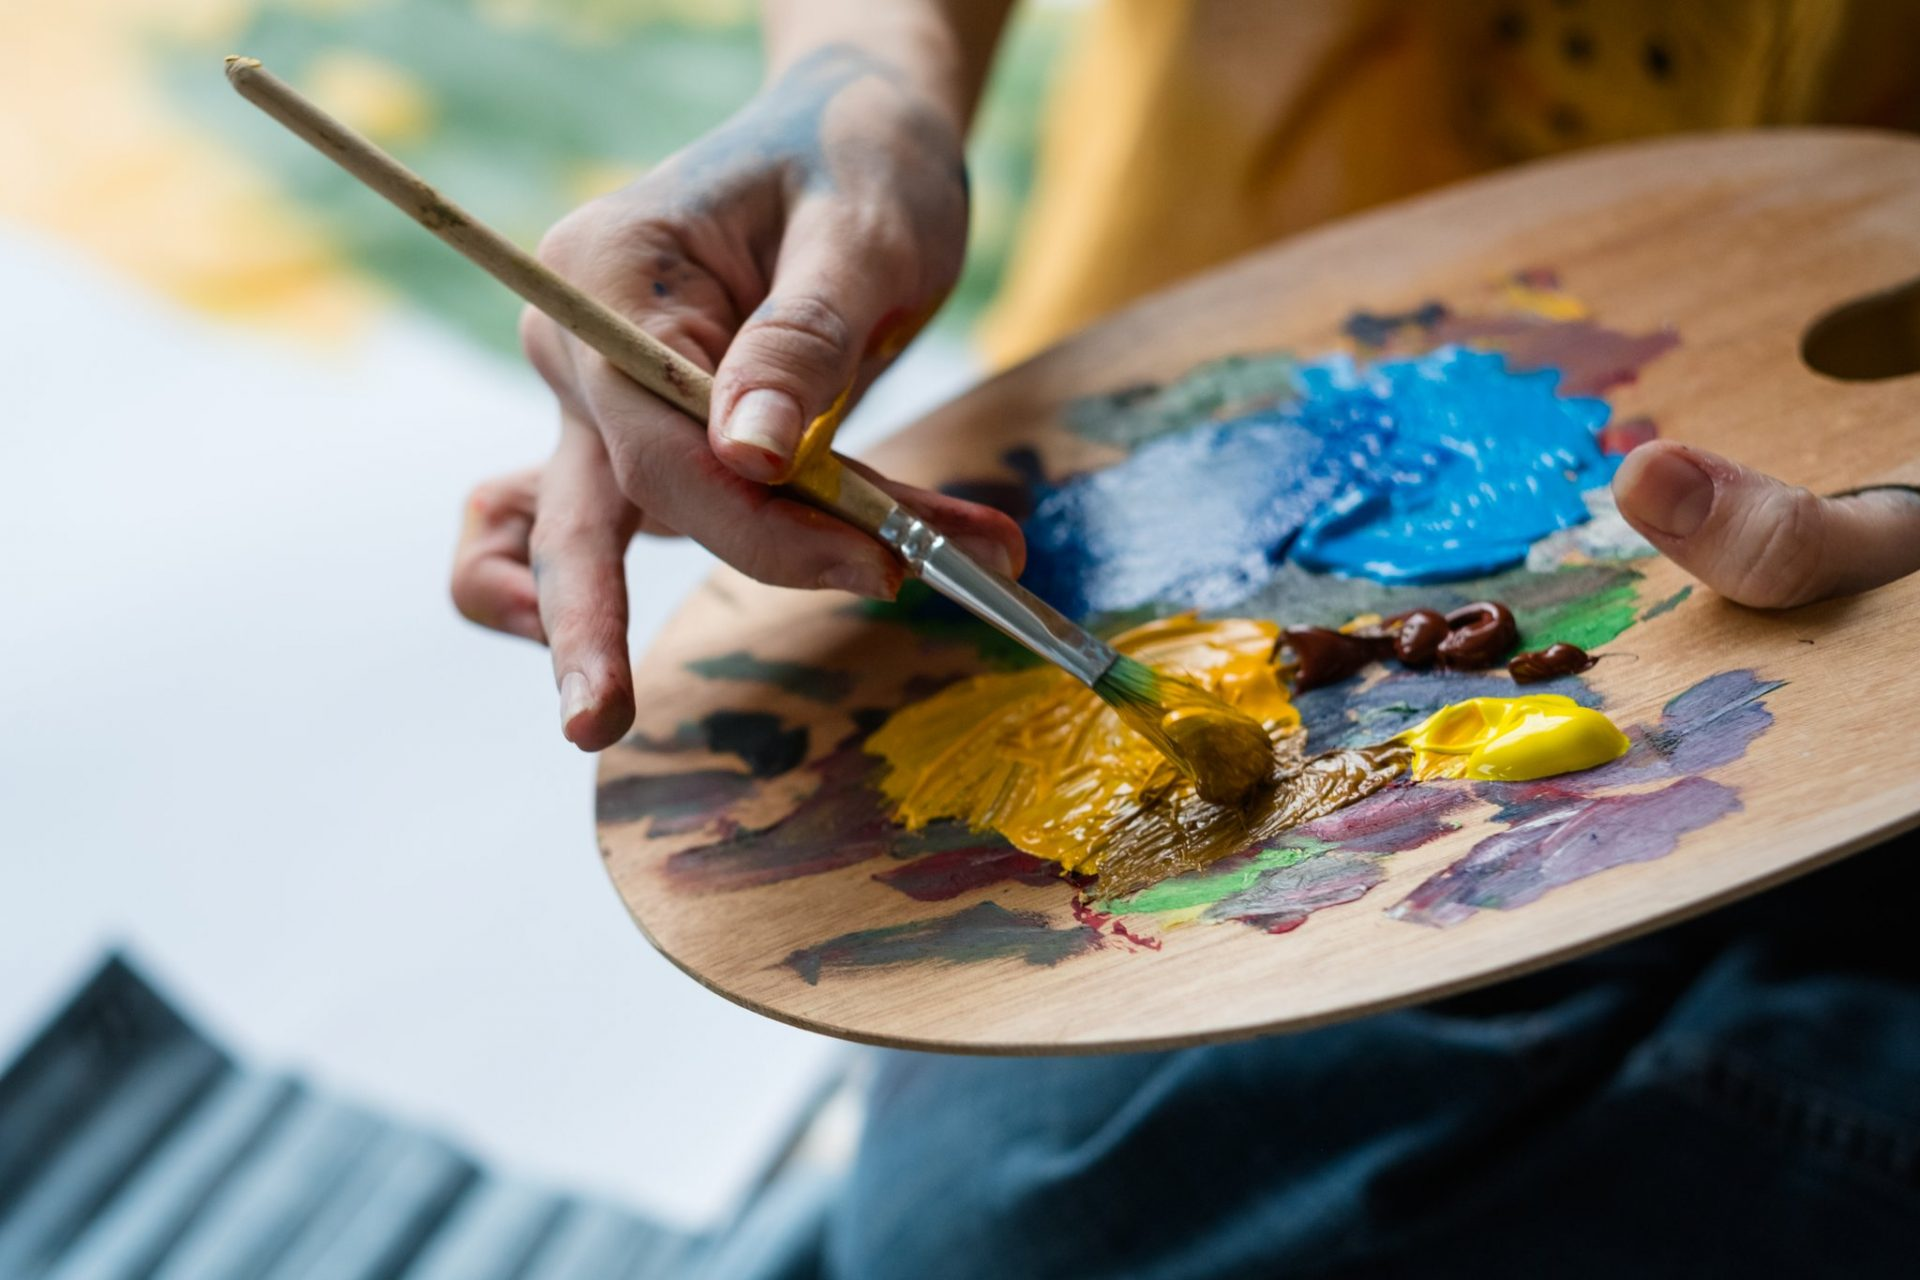 10 calming hobbies to take up now